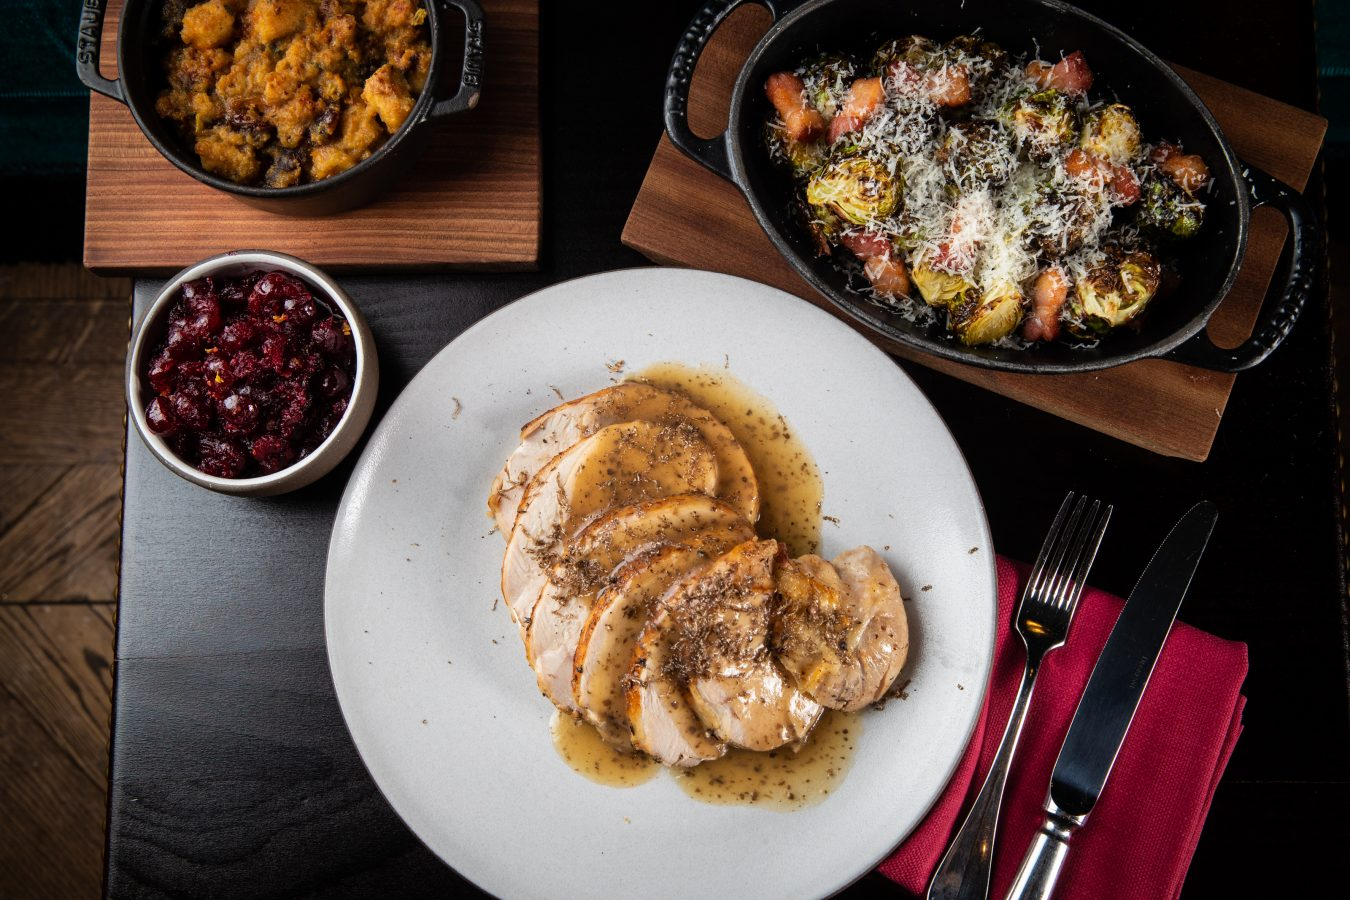 NoMad's Roast Turkey paired with creamy parsnip creamy parsnip ecrasse, delicata squash, chestnut stuffing and a rich black truffle gravy